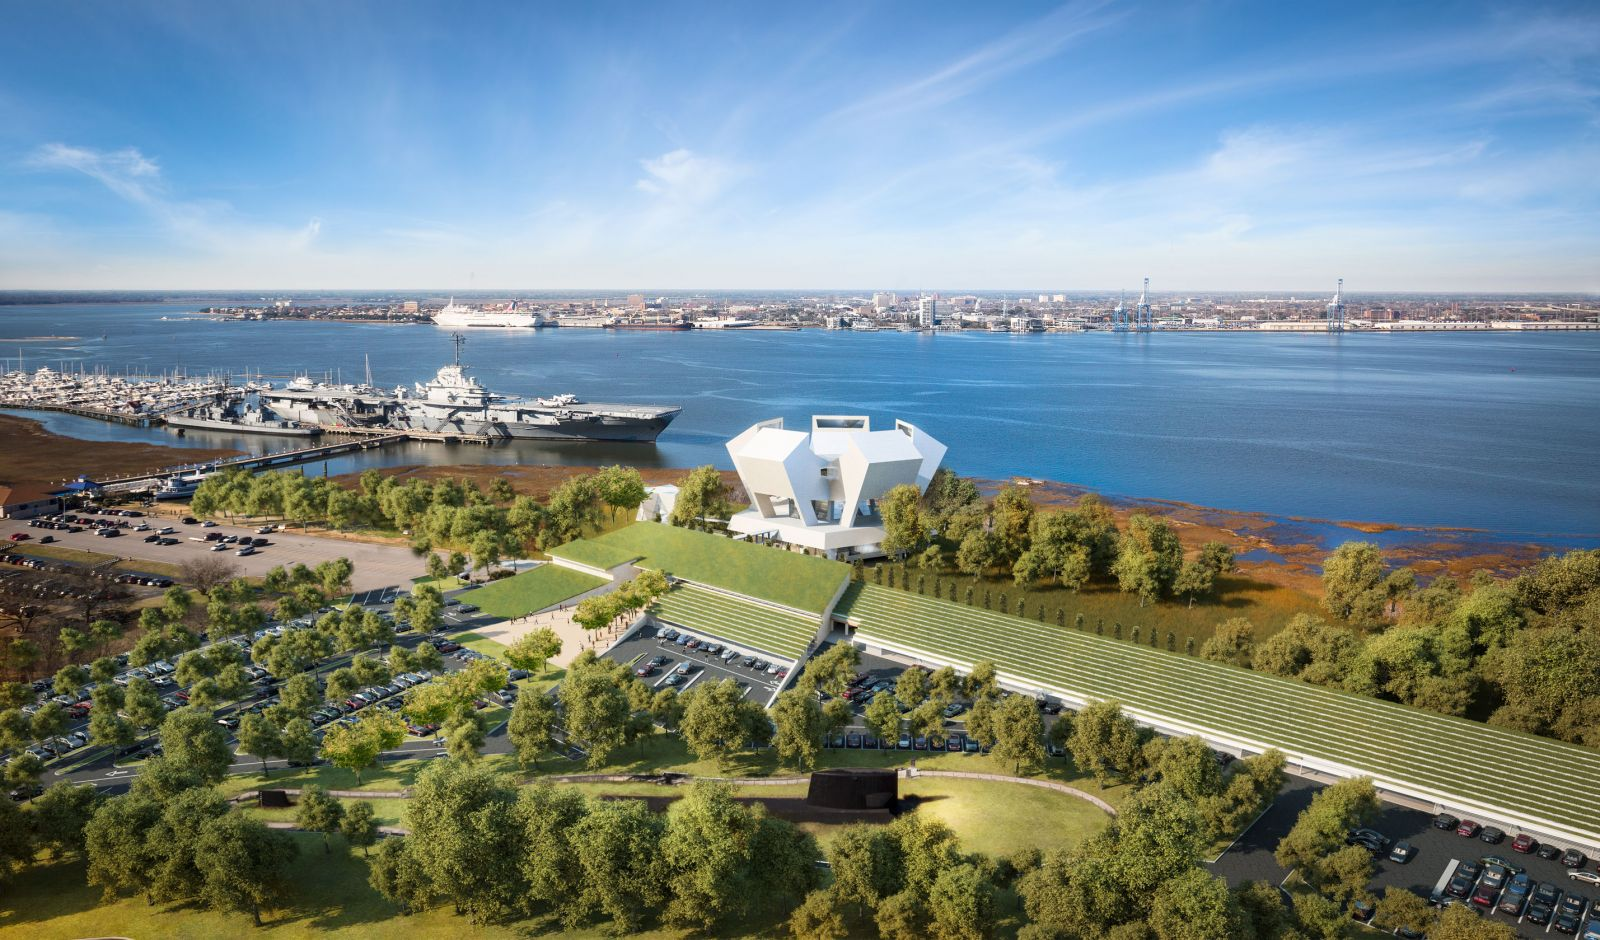 The National Medal of Honor Museum site will include a grass-topped pavilion (foreground), the main museum (center) and a chapel (left of the museum building). (Rendering/Safdie Architects for the National Medal of Honor Museum)